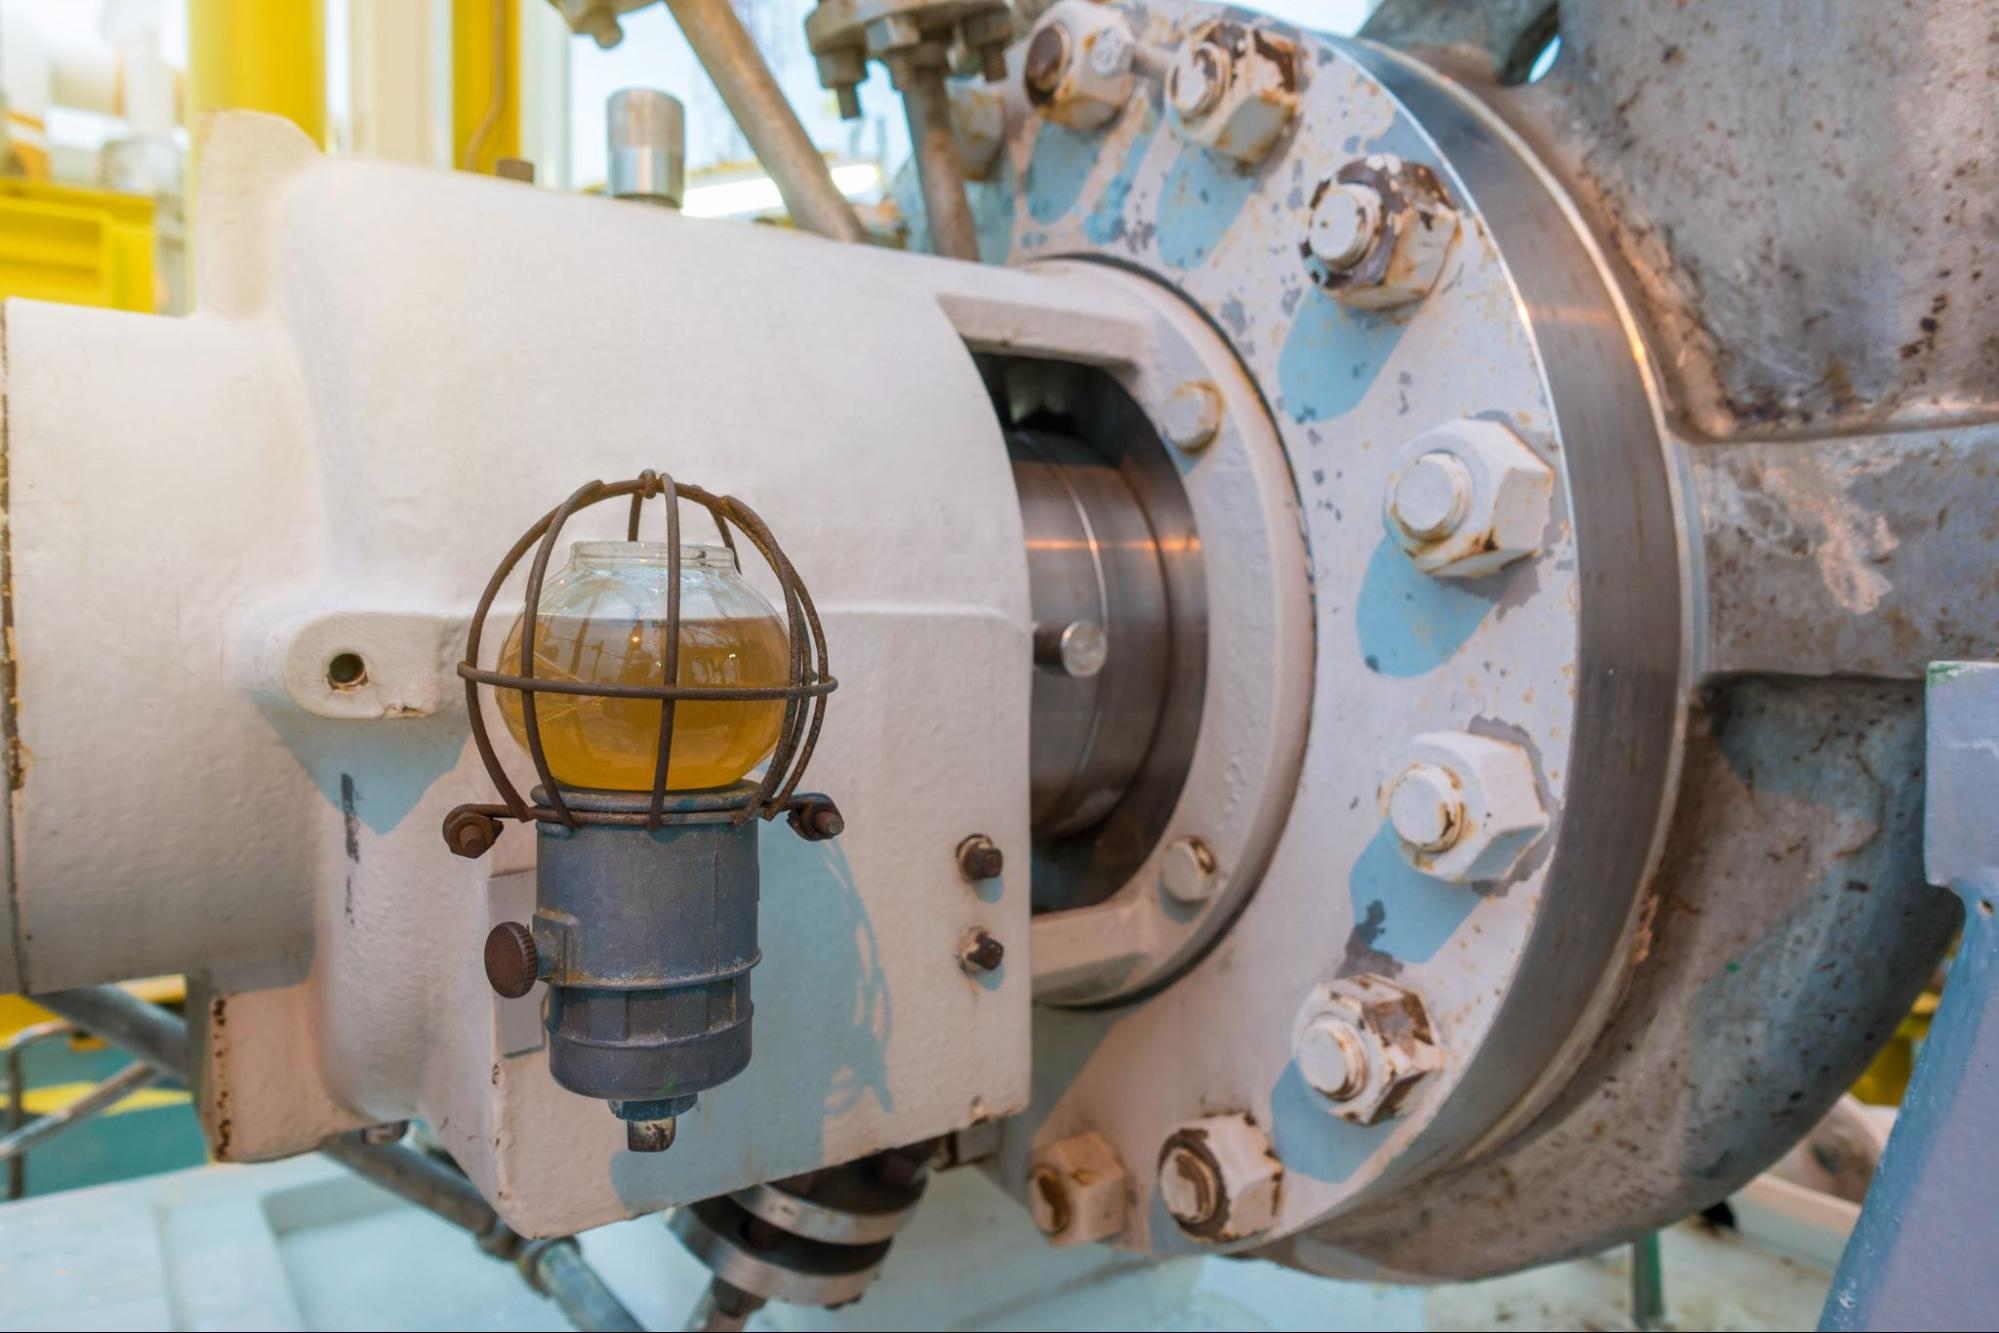 Mechanical seal leak troubleshooting can assist in identifying root causes of leaks in rotation equipment, such as centrifugal pumps